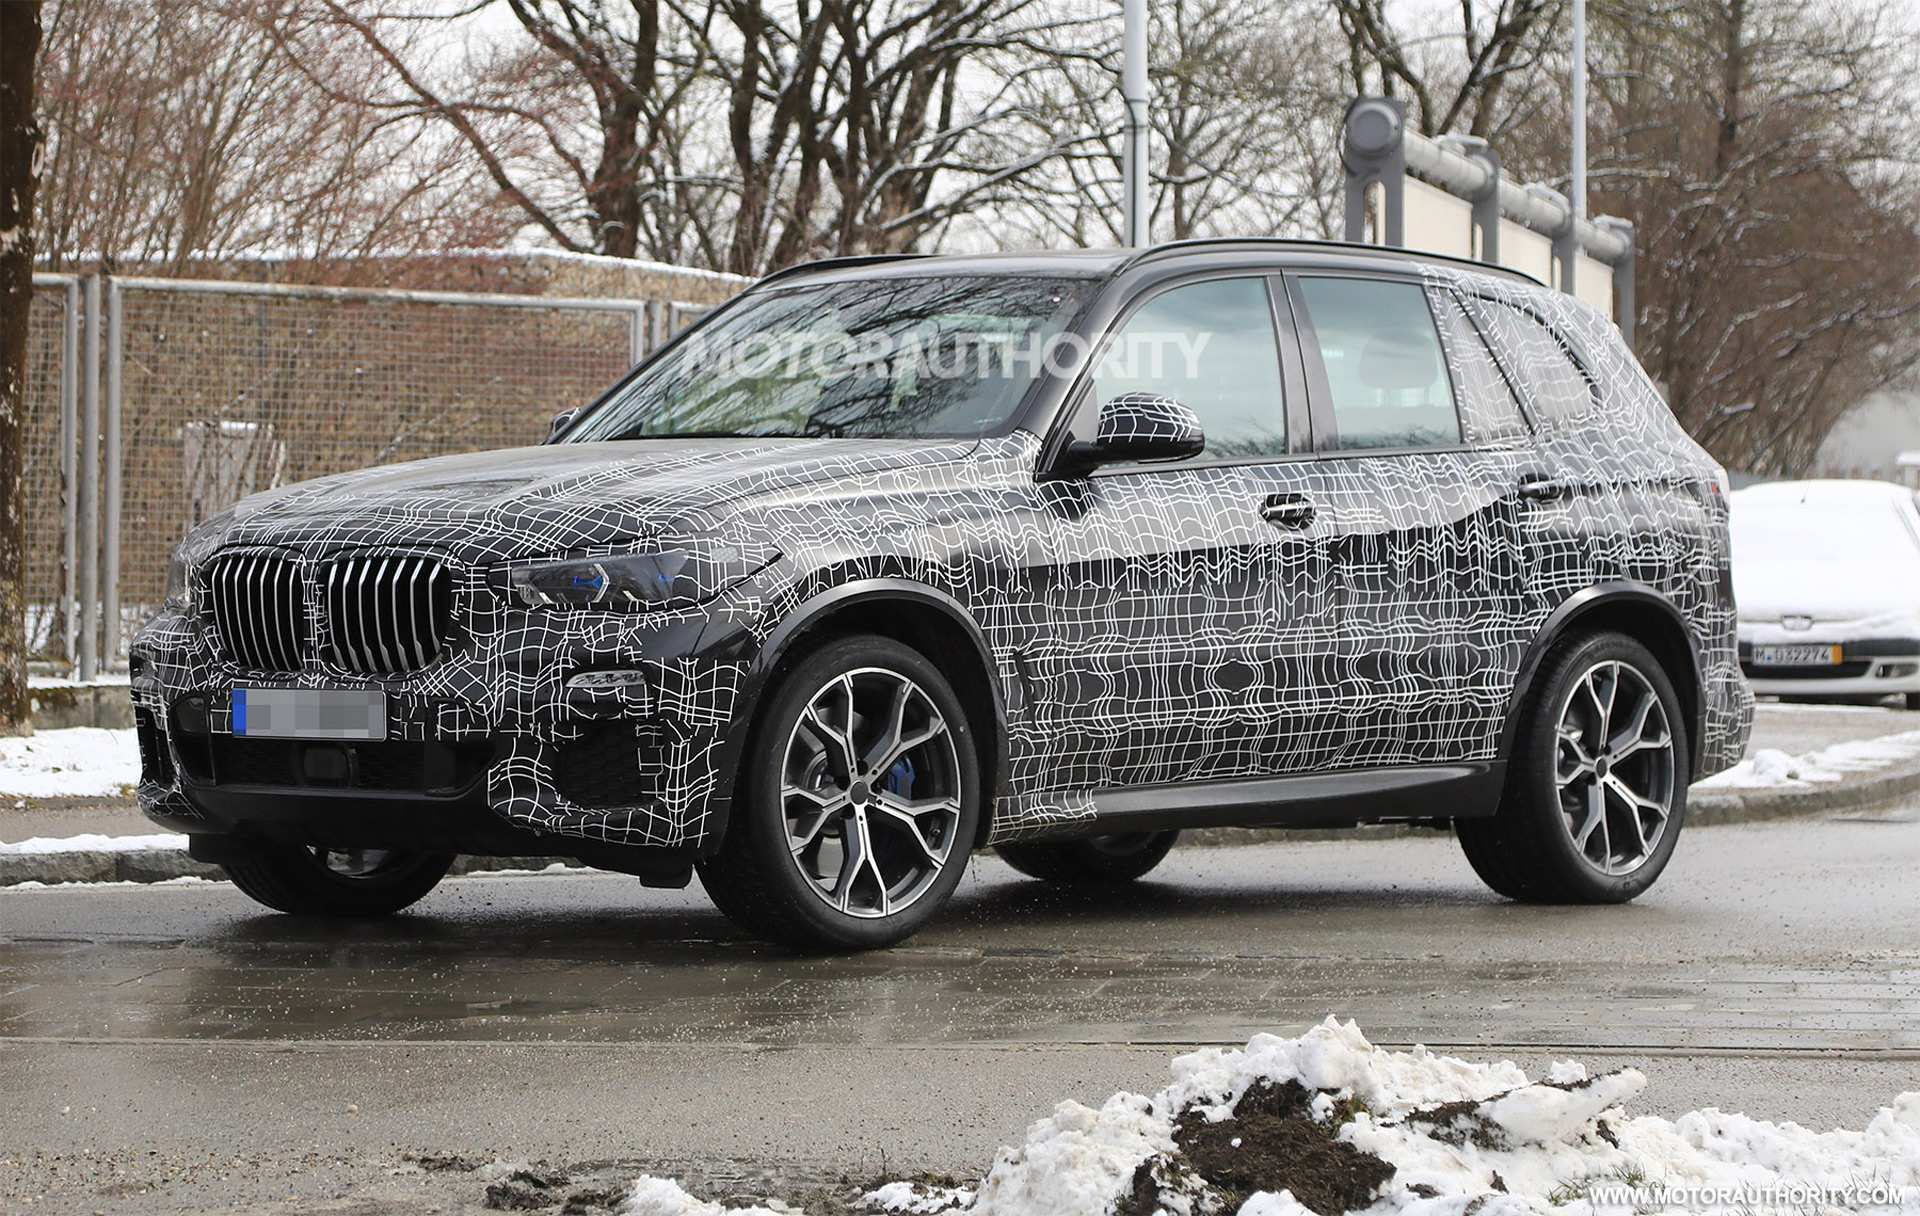 63 Best 2020 Next Gen BMW X5 Suv Review And Release Date